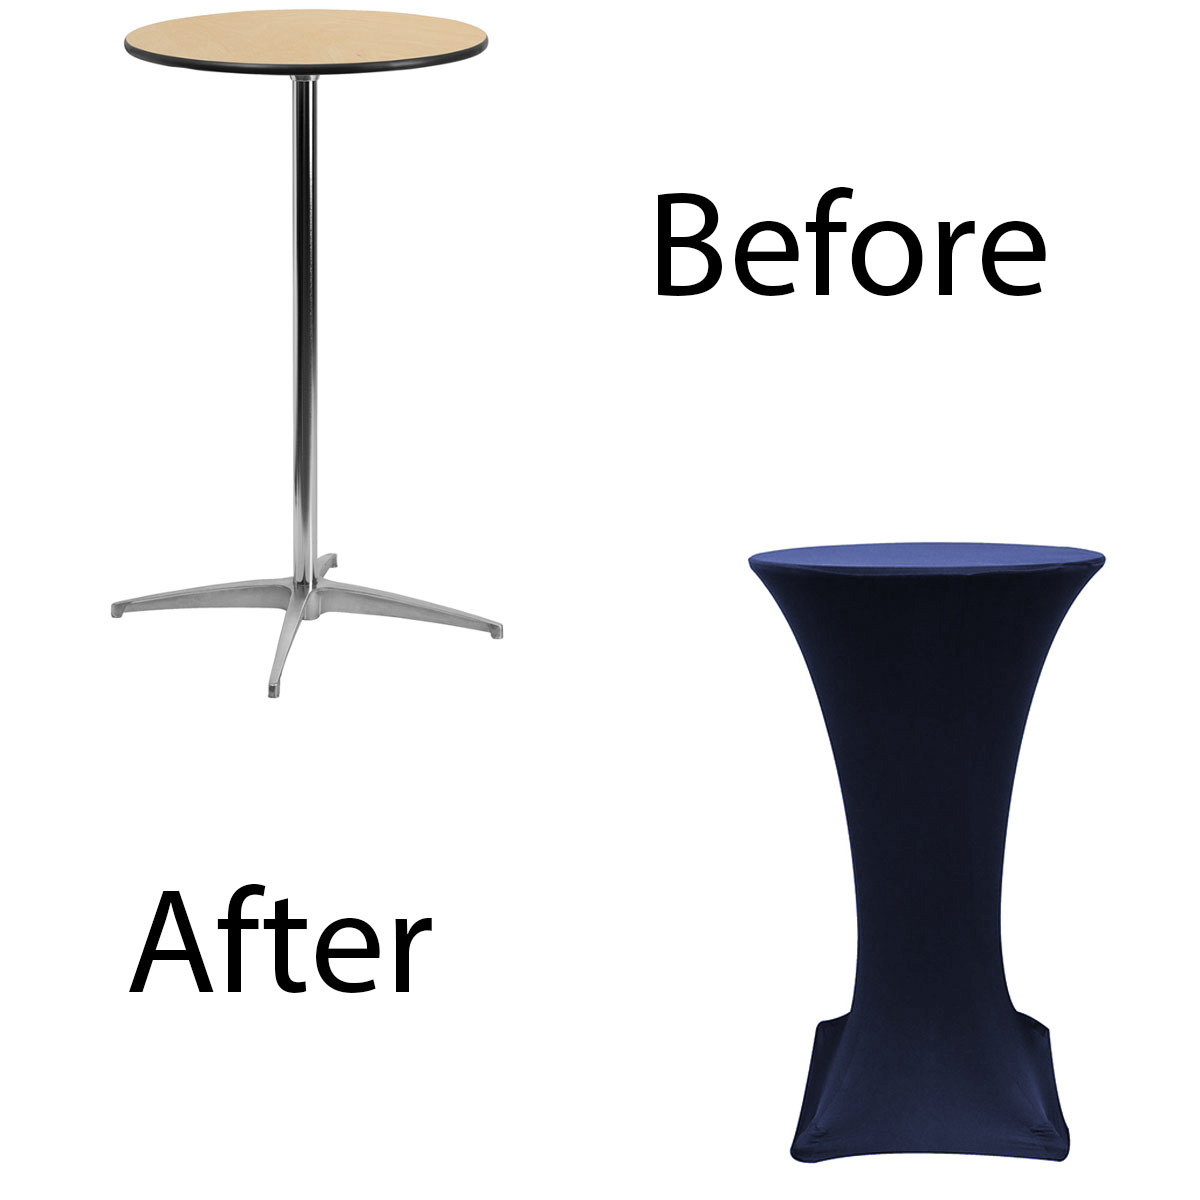 24-inch-highboy-cocktail-spandex-table-covers-navy-before-after.jpg